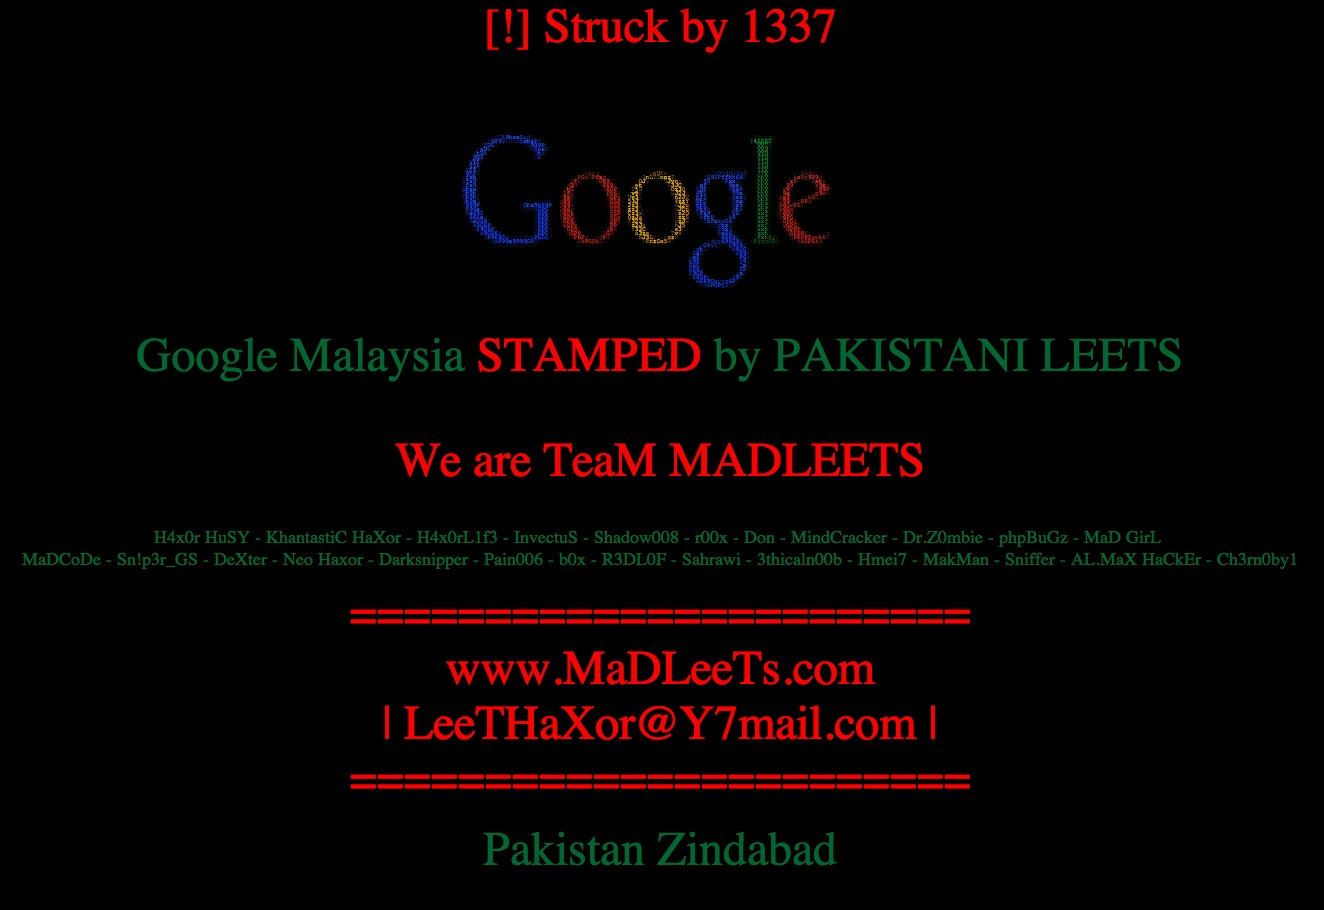 google malaysia site dns hacked credit claimed by team madleets